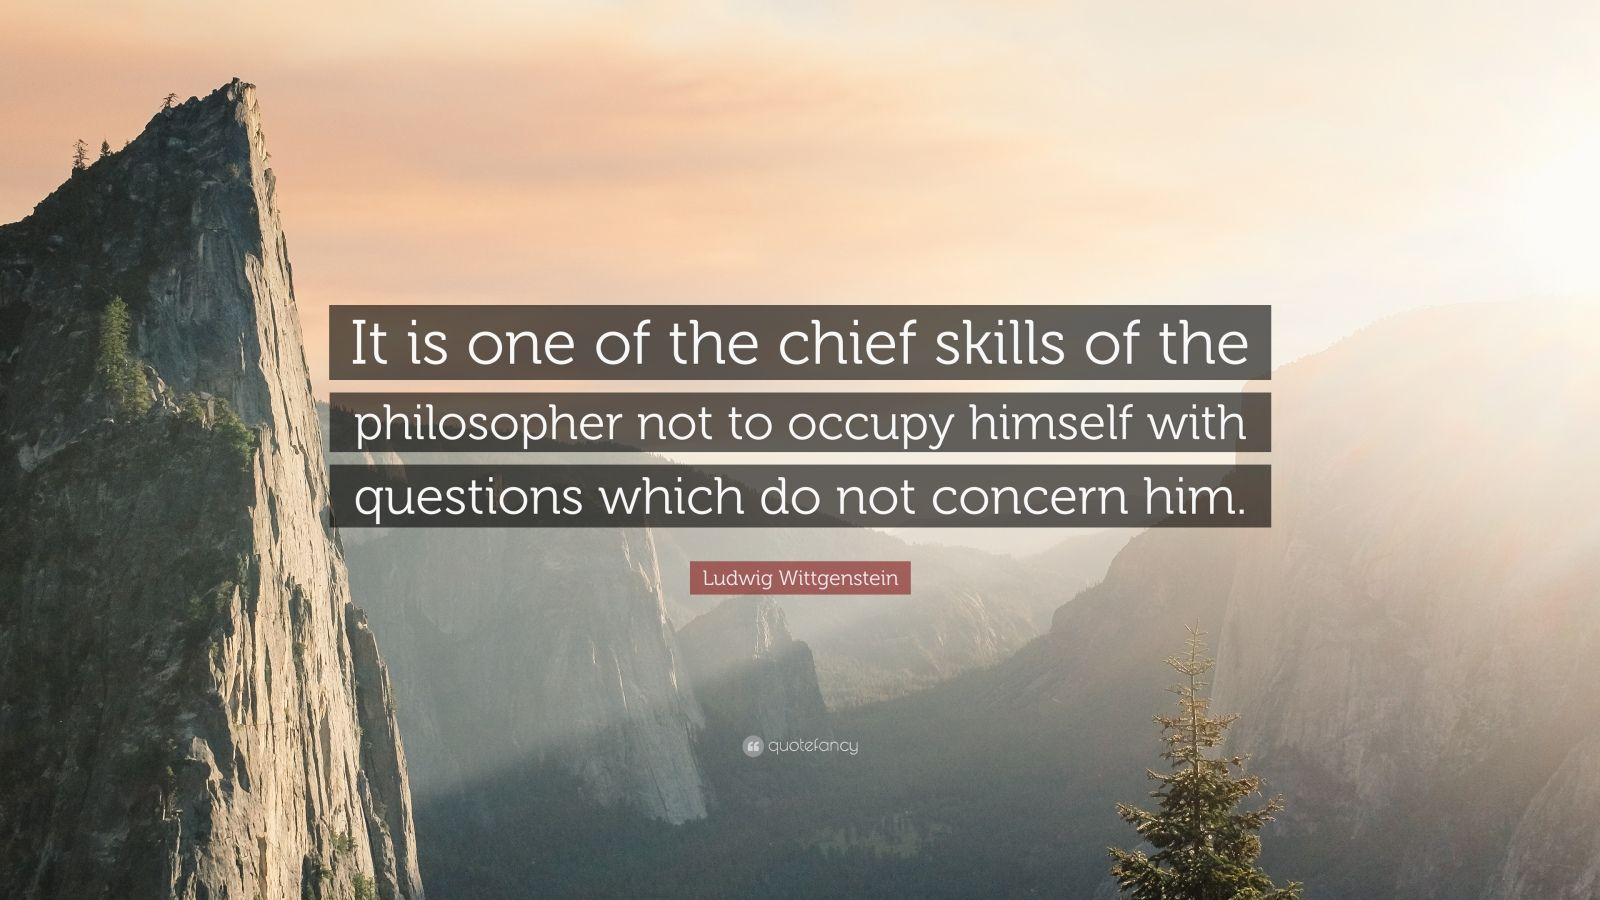 """Ludwig Wittgenstein Quote: """"It is one of the chief skills of the philosopher not to occupy himself with questions which do not concern him."""""""